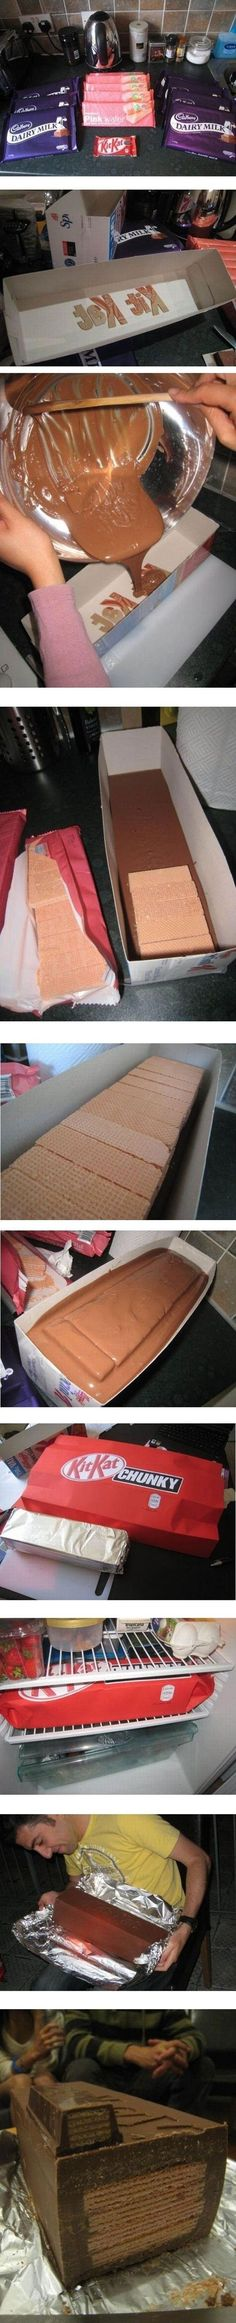 HOW TO MAKE: GIANT KIT KAT BAR This would be such a fun gift!